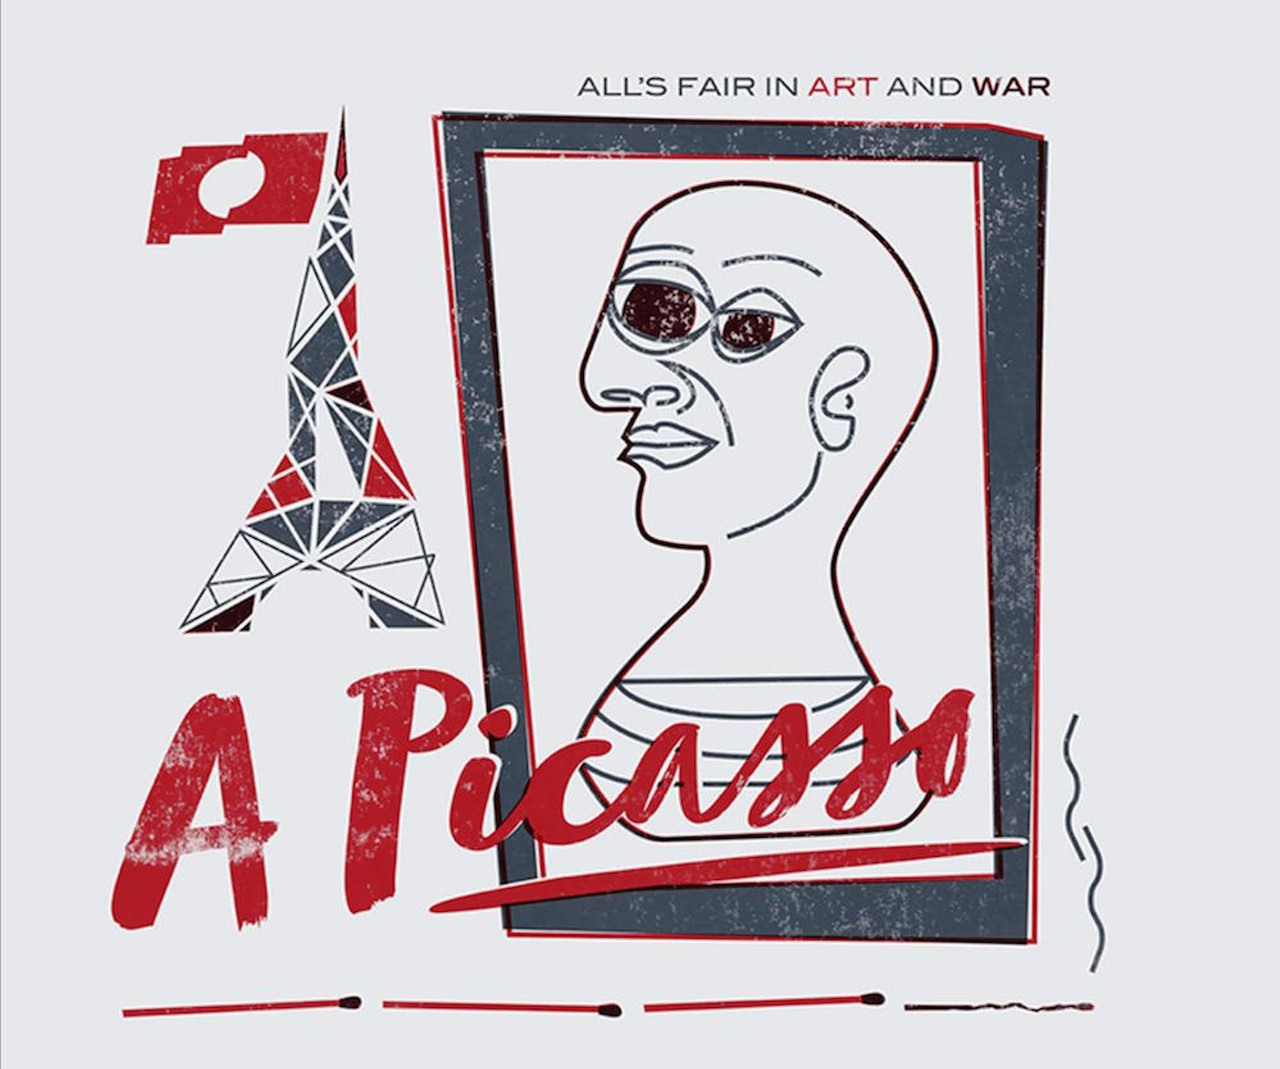 cacad1b2_a_picasso